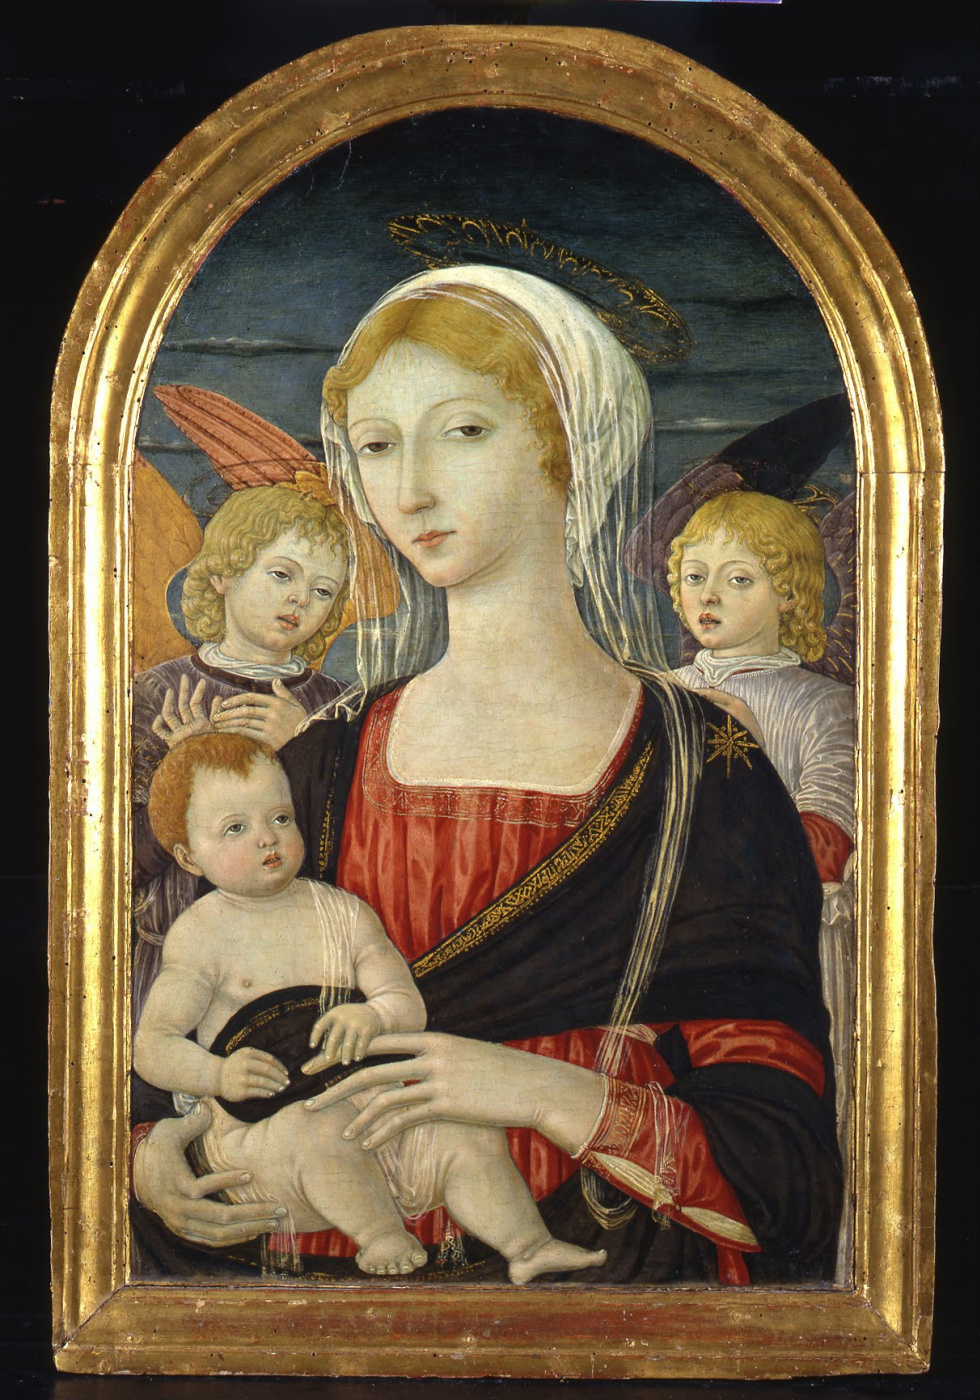 Matteo di Giovanni. Madonna and child with angels